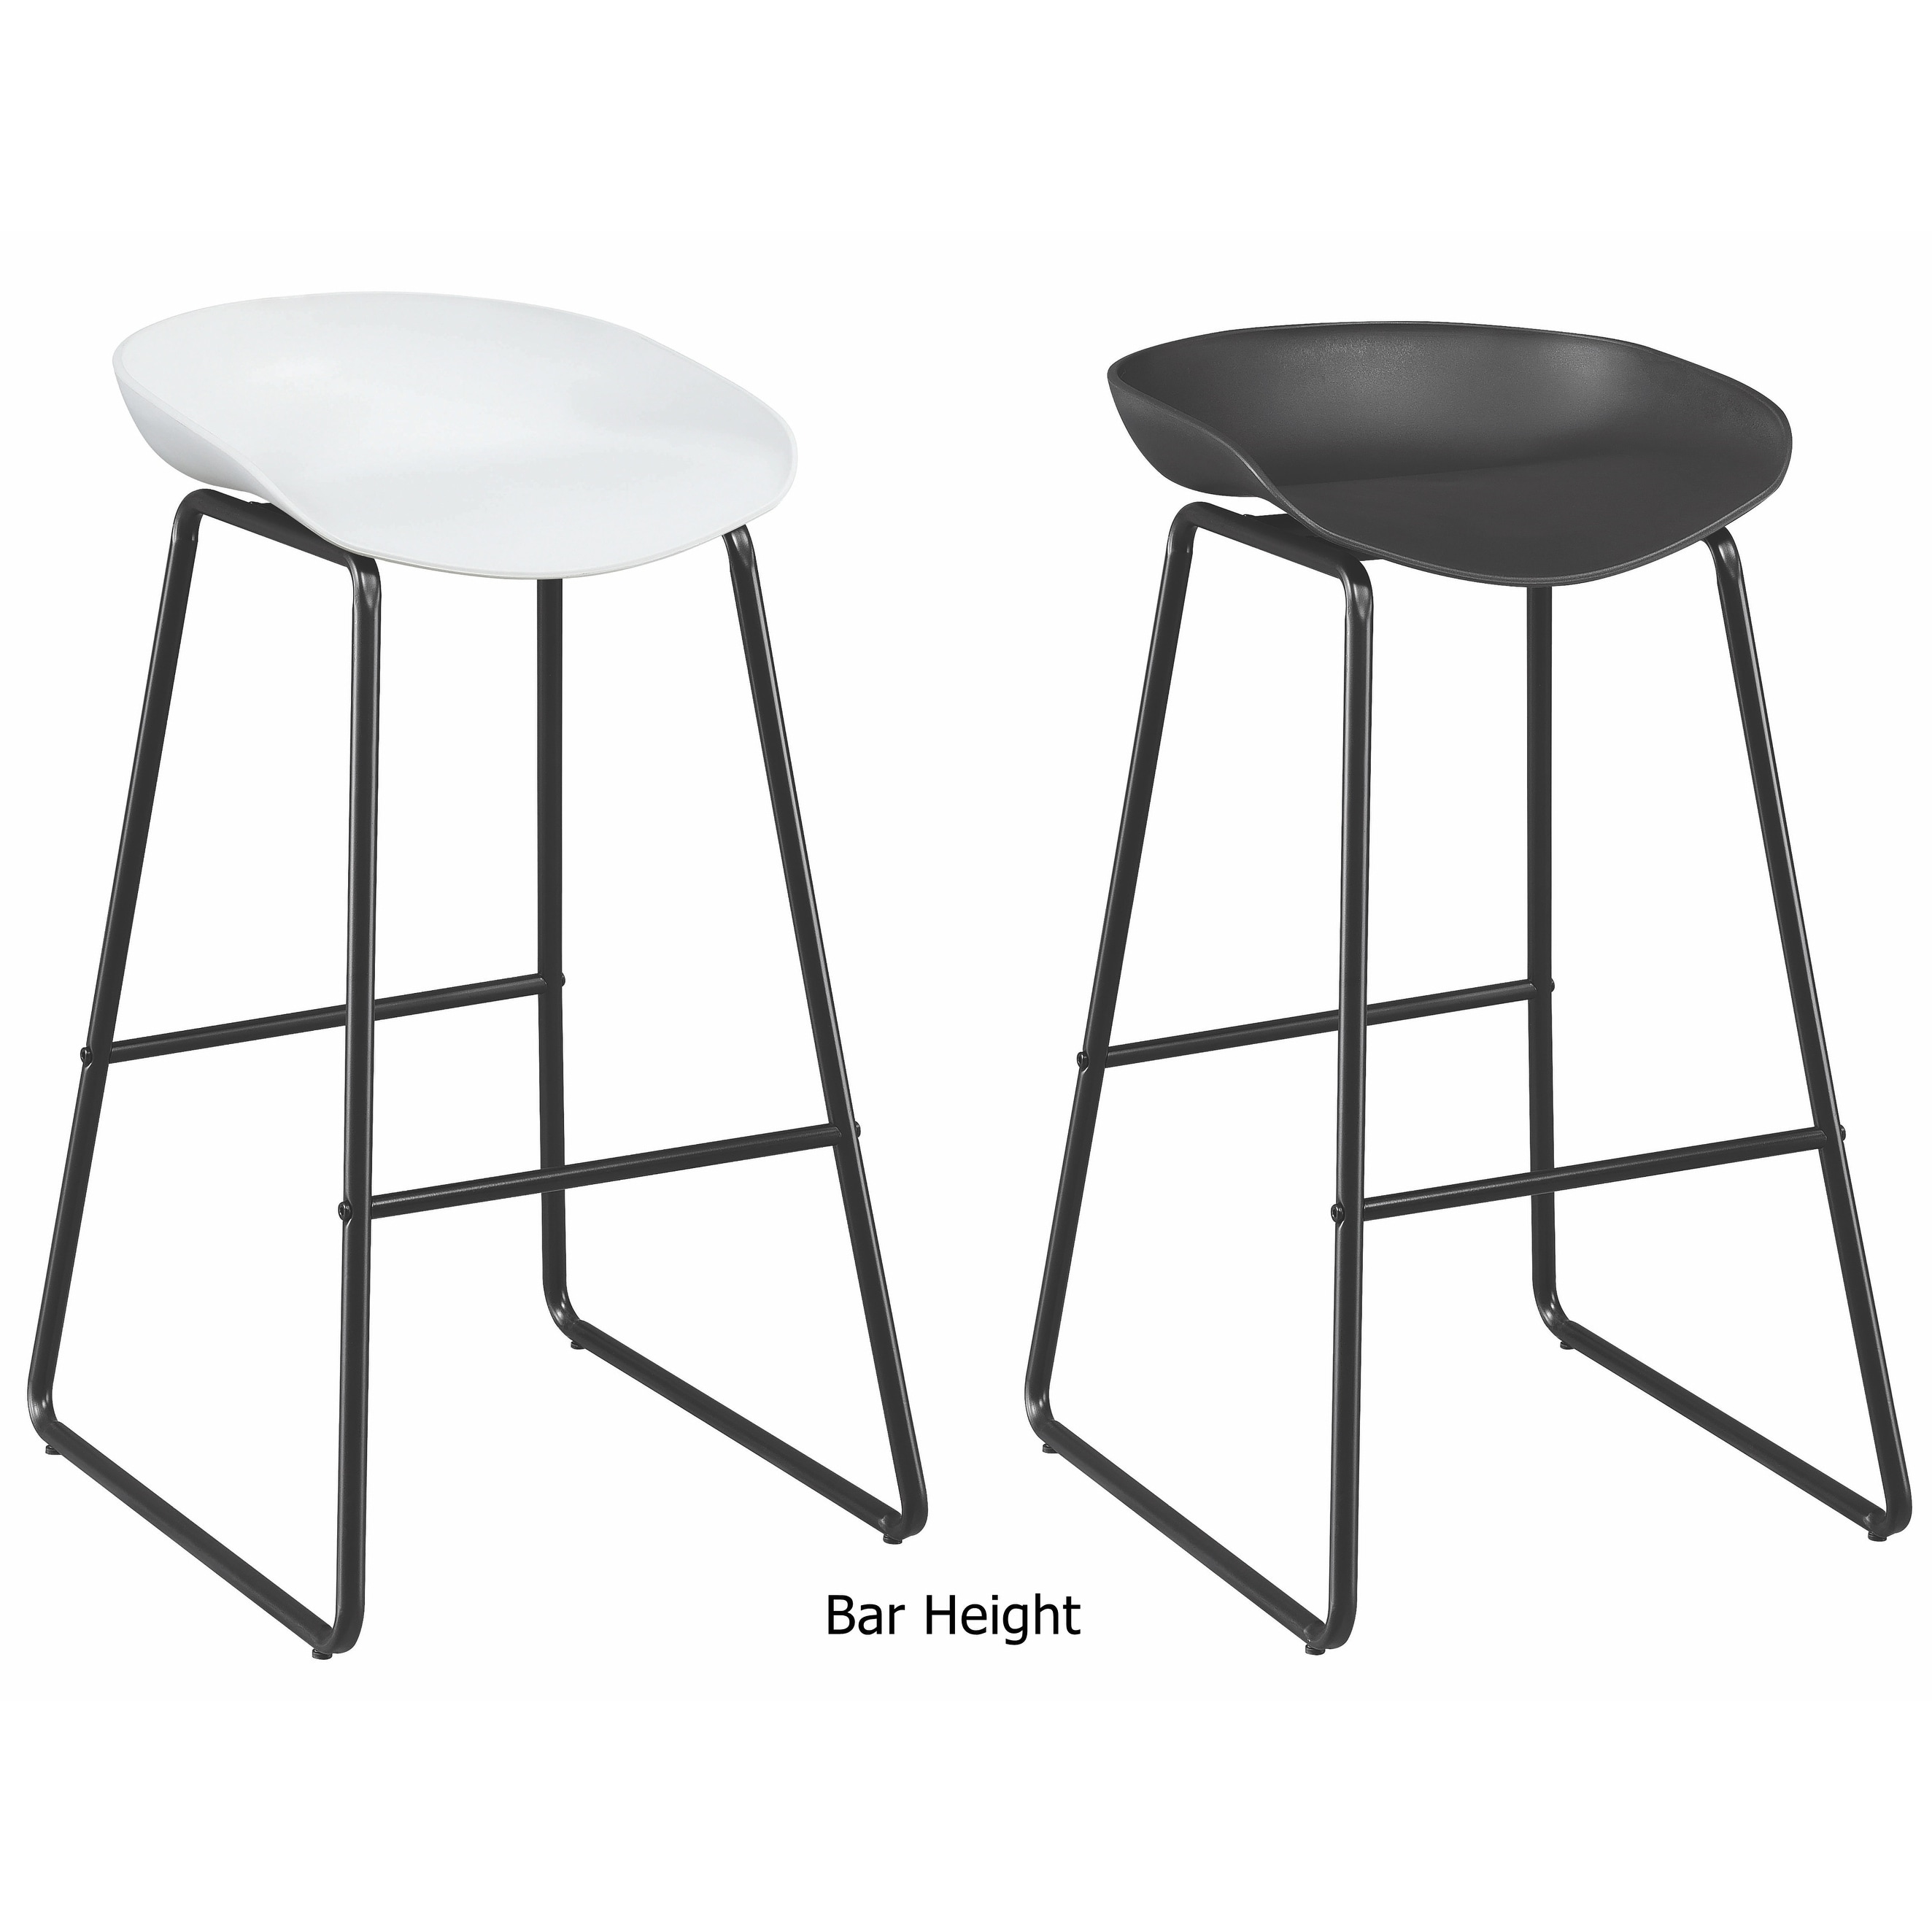 Super Contemporary Modern Sled Design Dining Stools Set Of 2 Gmtry Best Dining Table And Chair Ideas Images Gmtryco